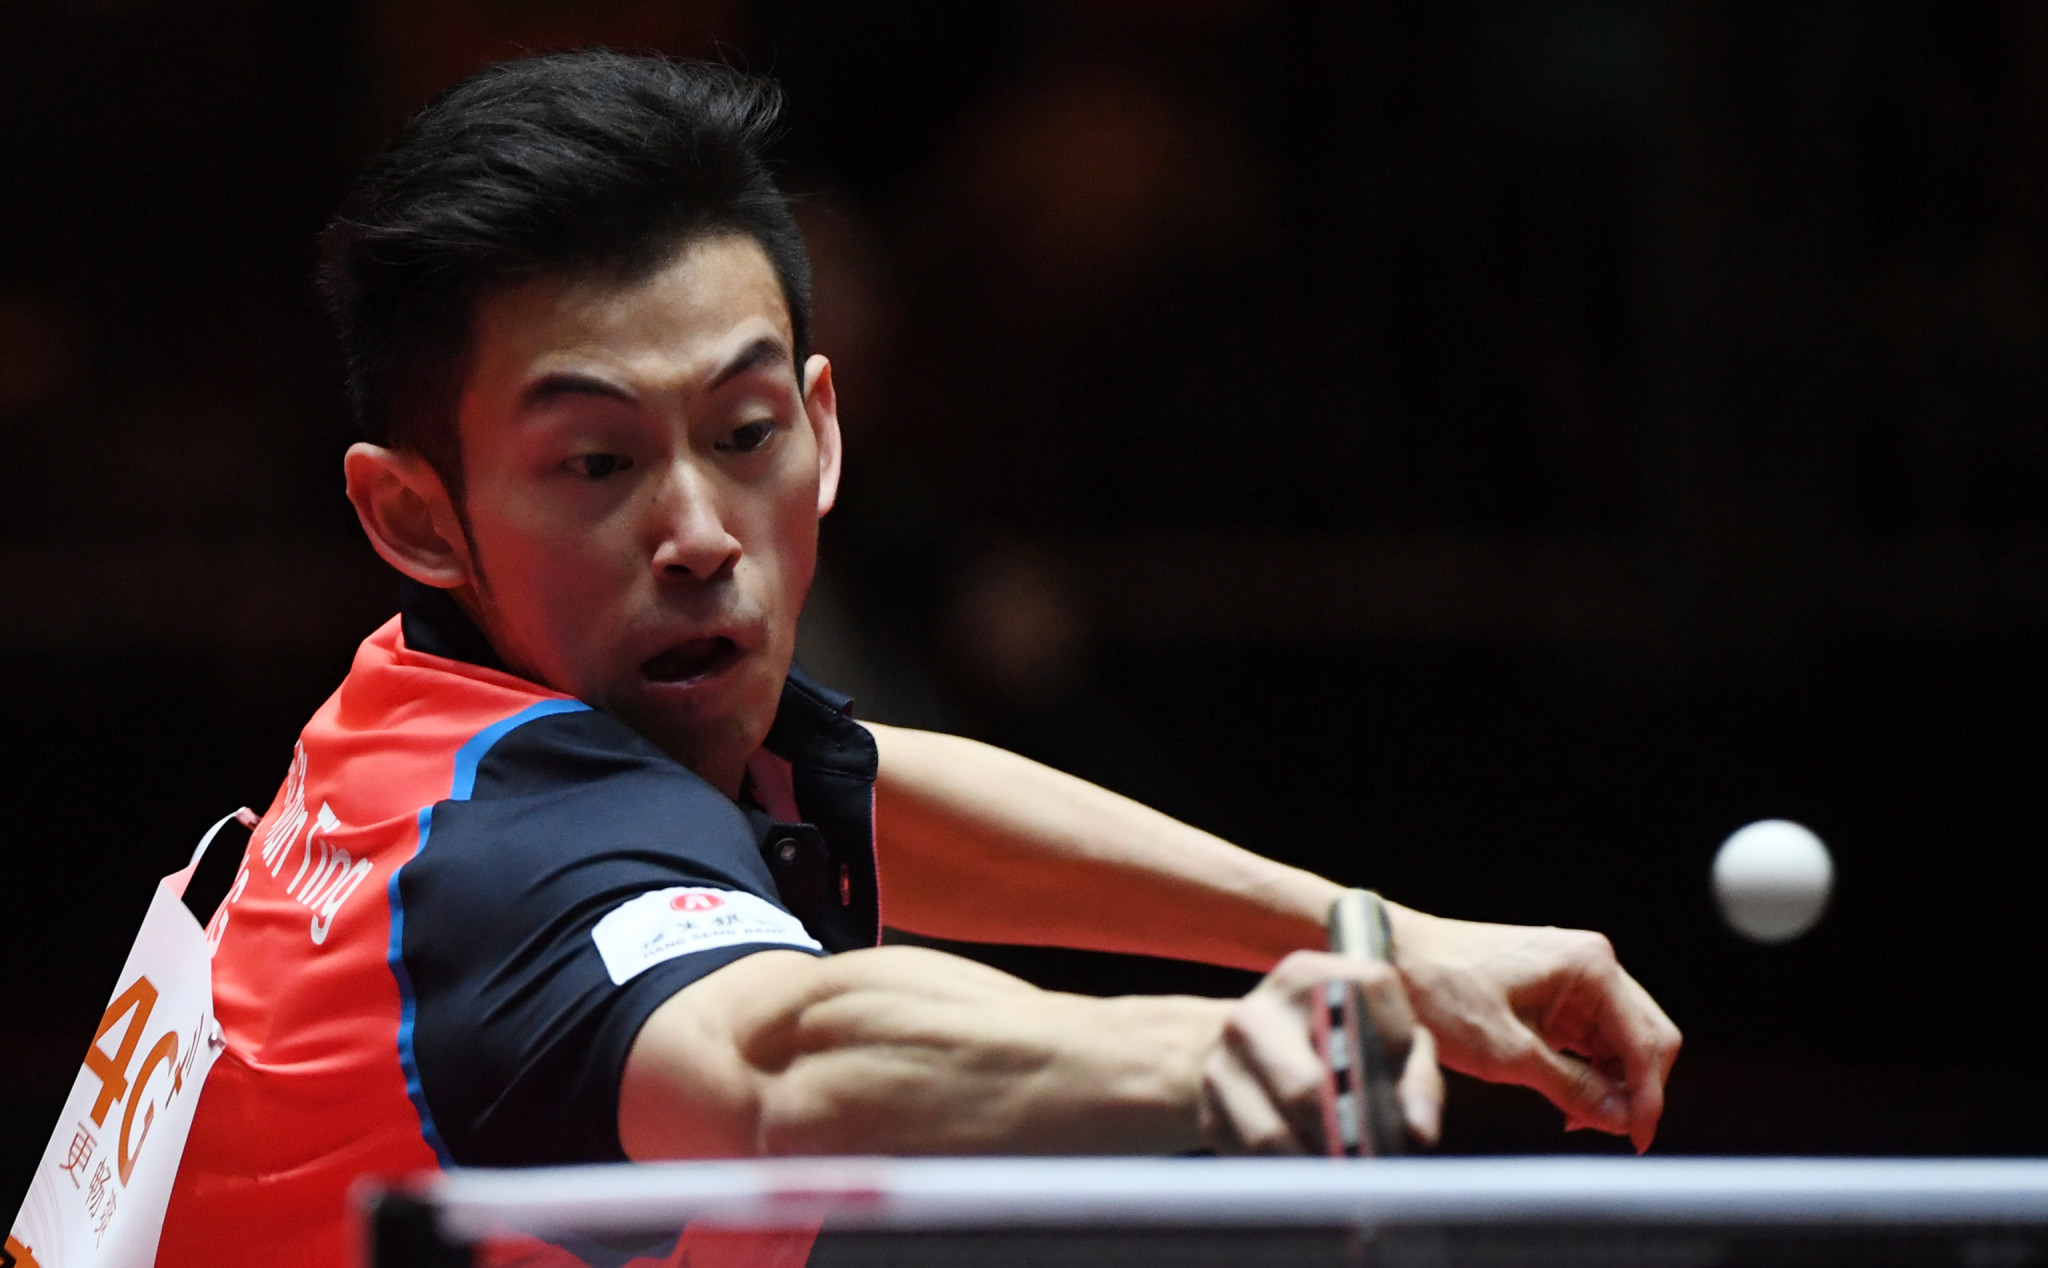 Hong Kong's Wong Chun Ting crashed out of the German Open in his first match ©Getty Images